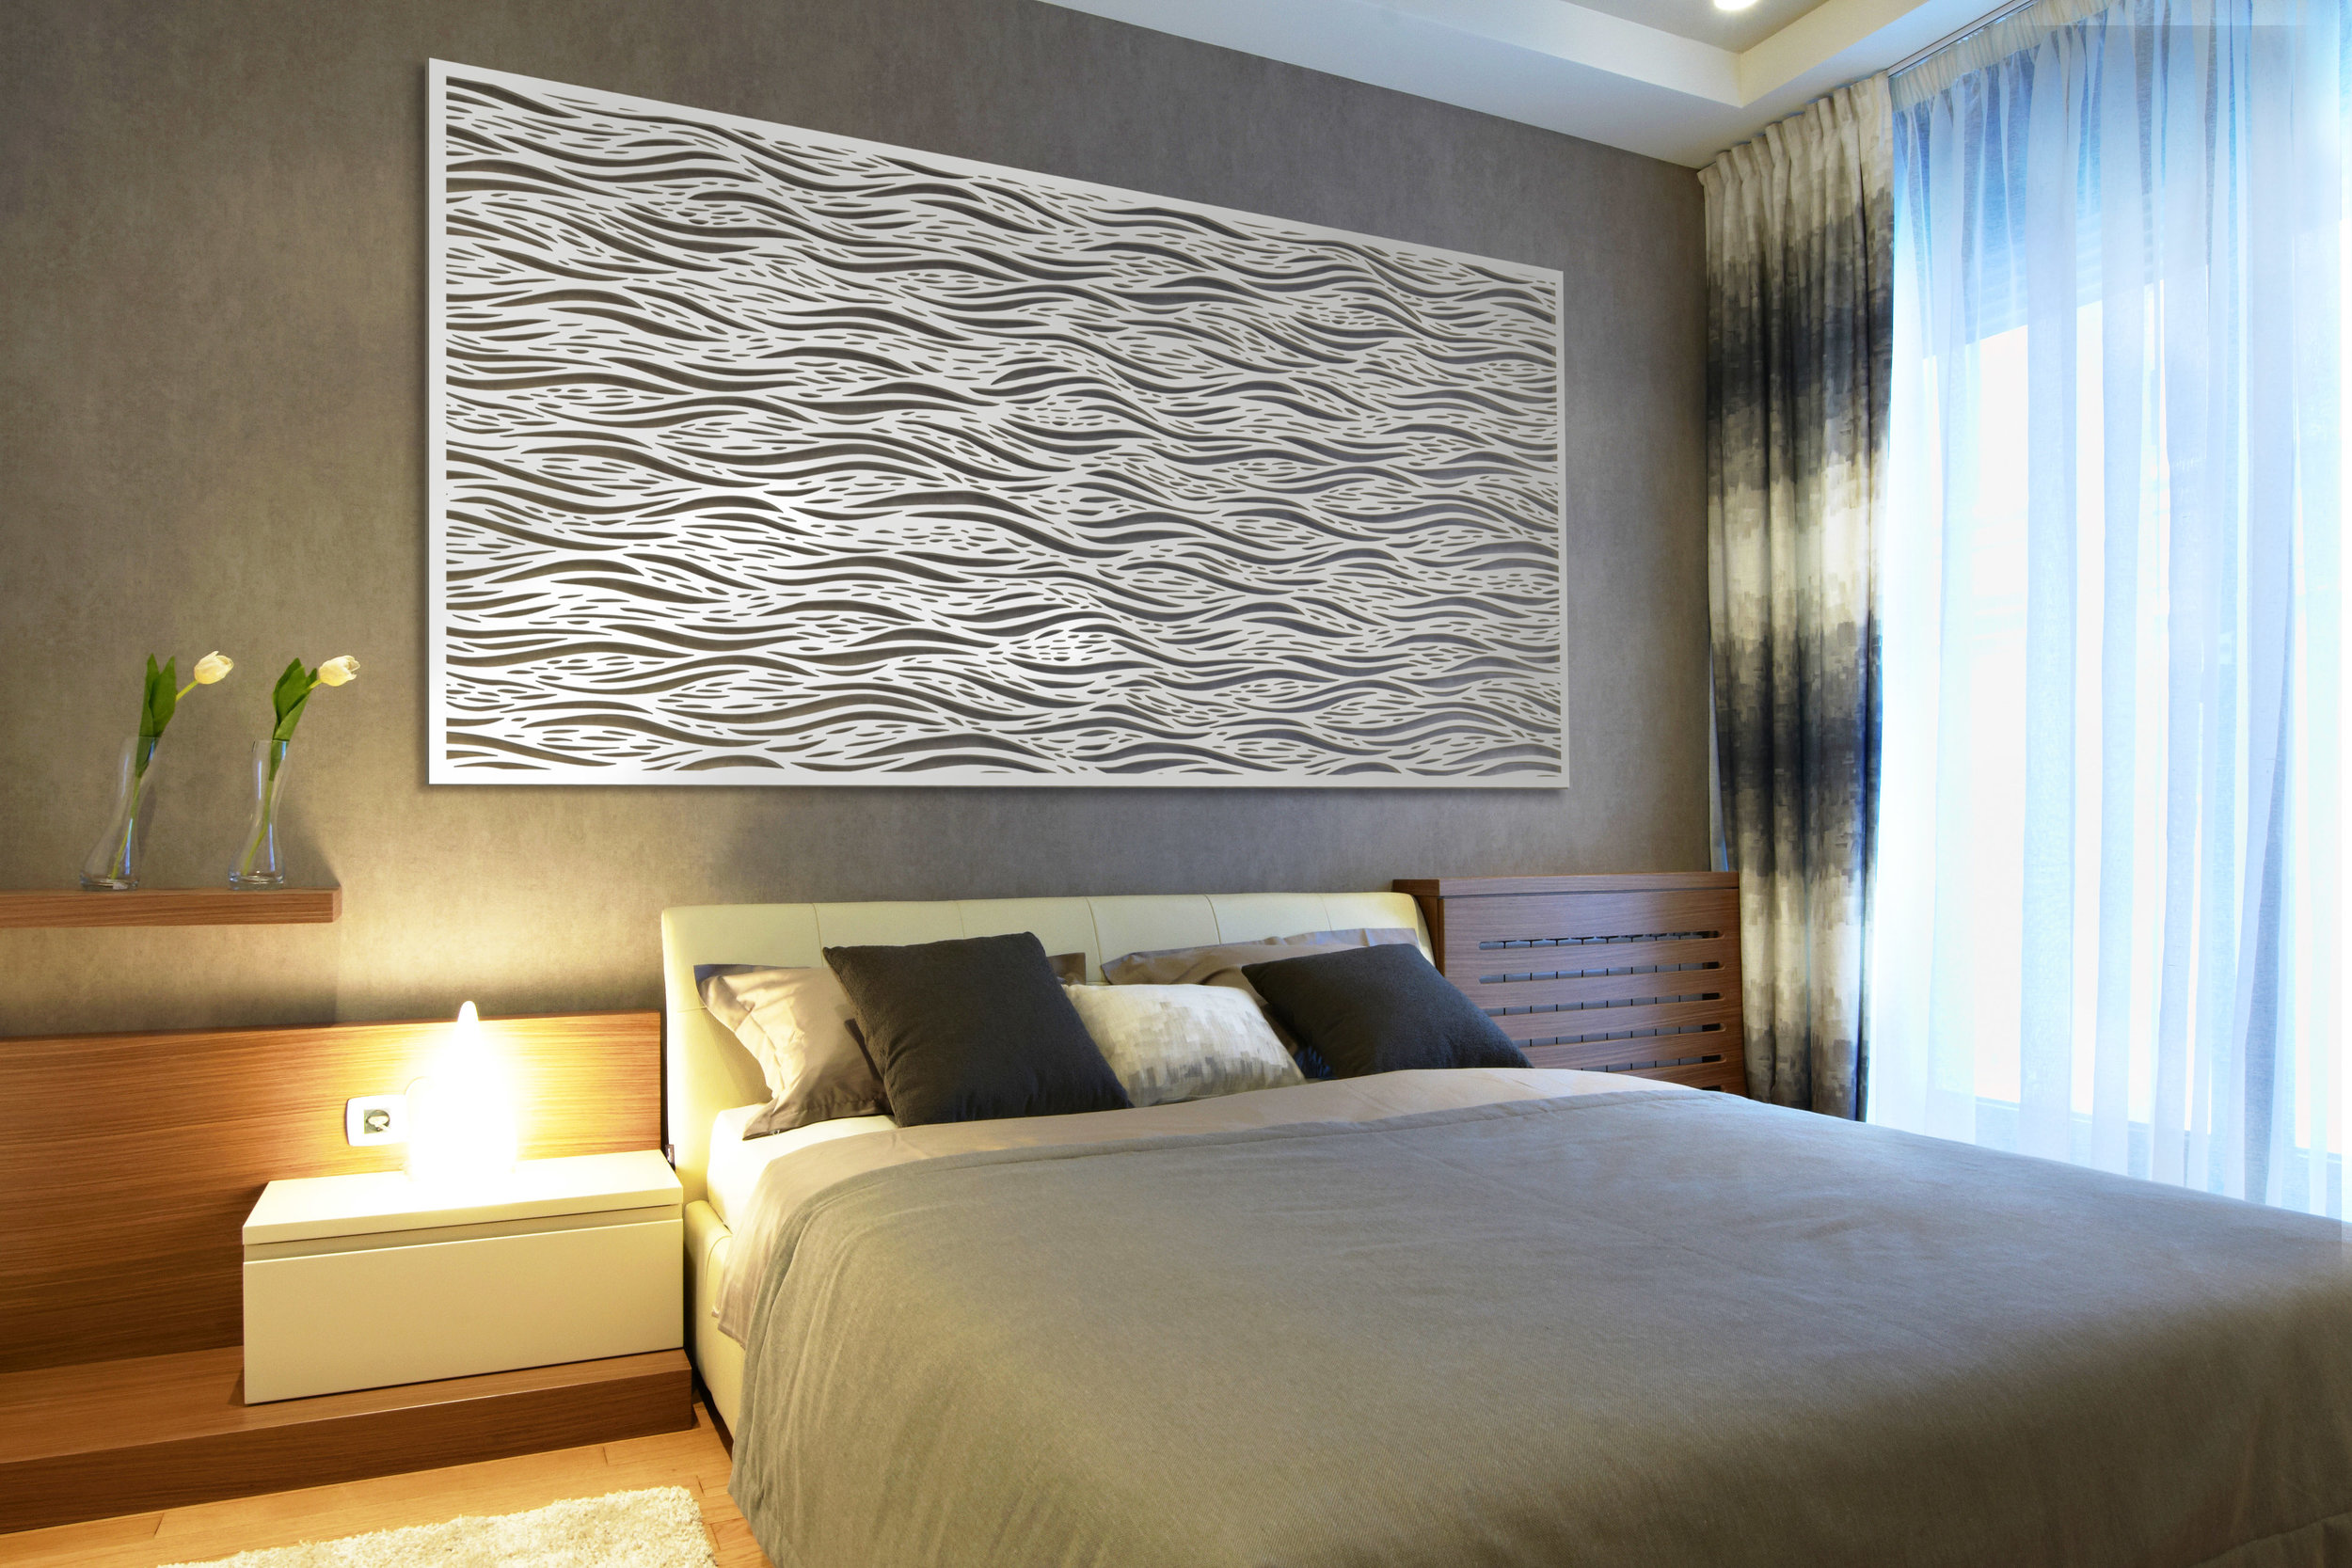 Installation Rendering C   Waterfall decorative hotel wall panel - painted